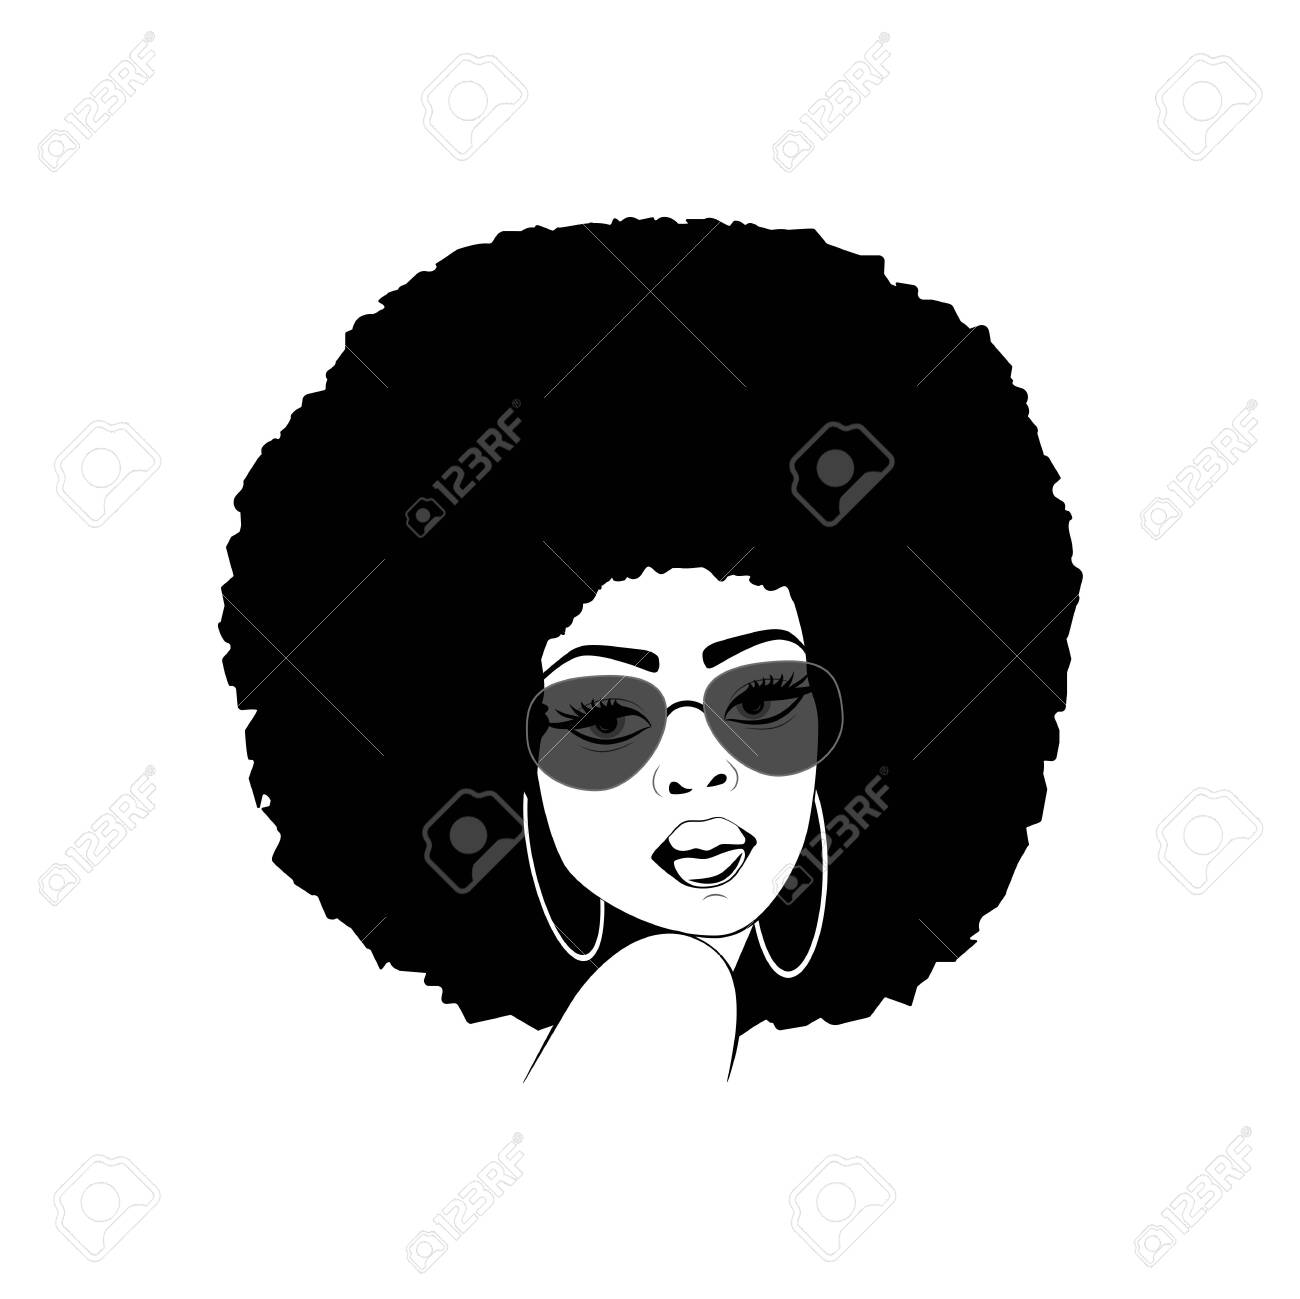 Foxy lady with afro hairstyle and sunglasses - 142541437